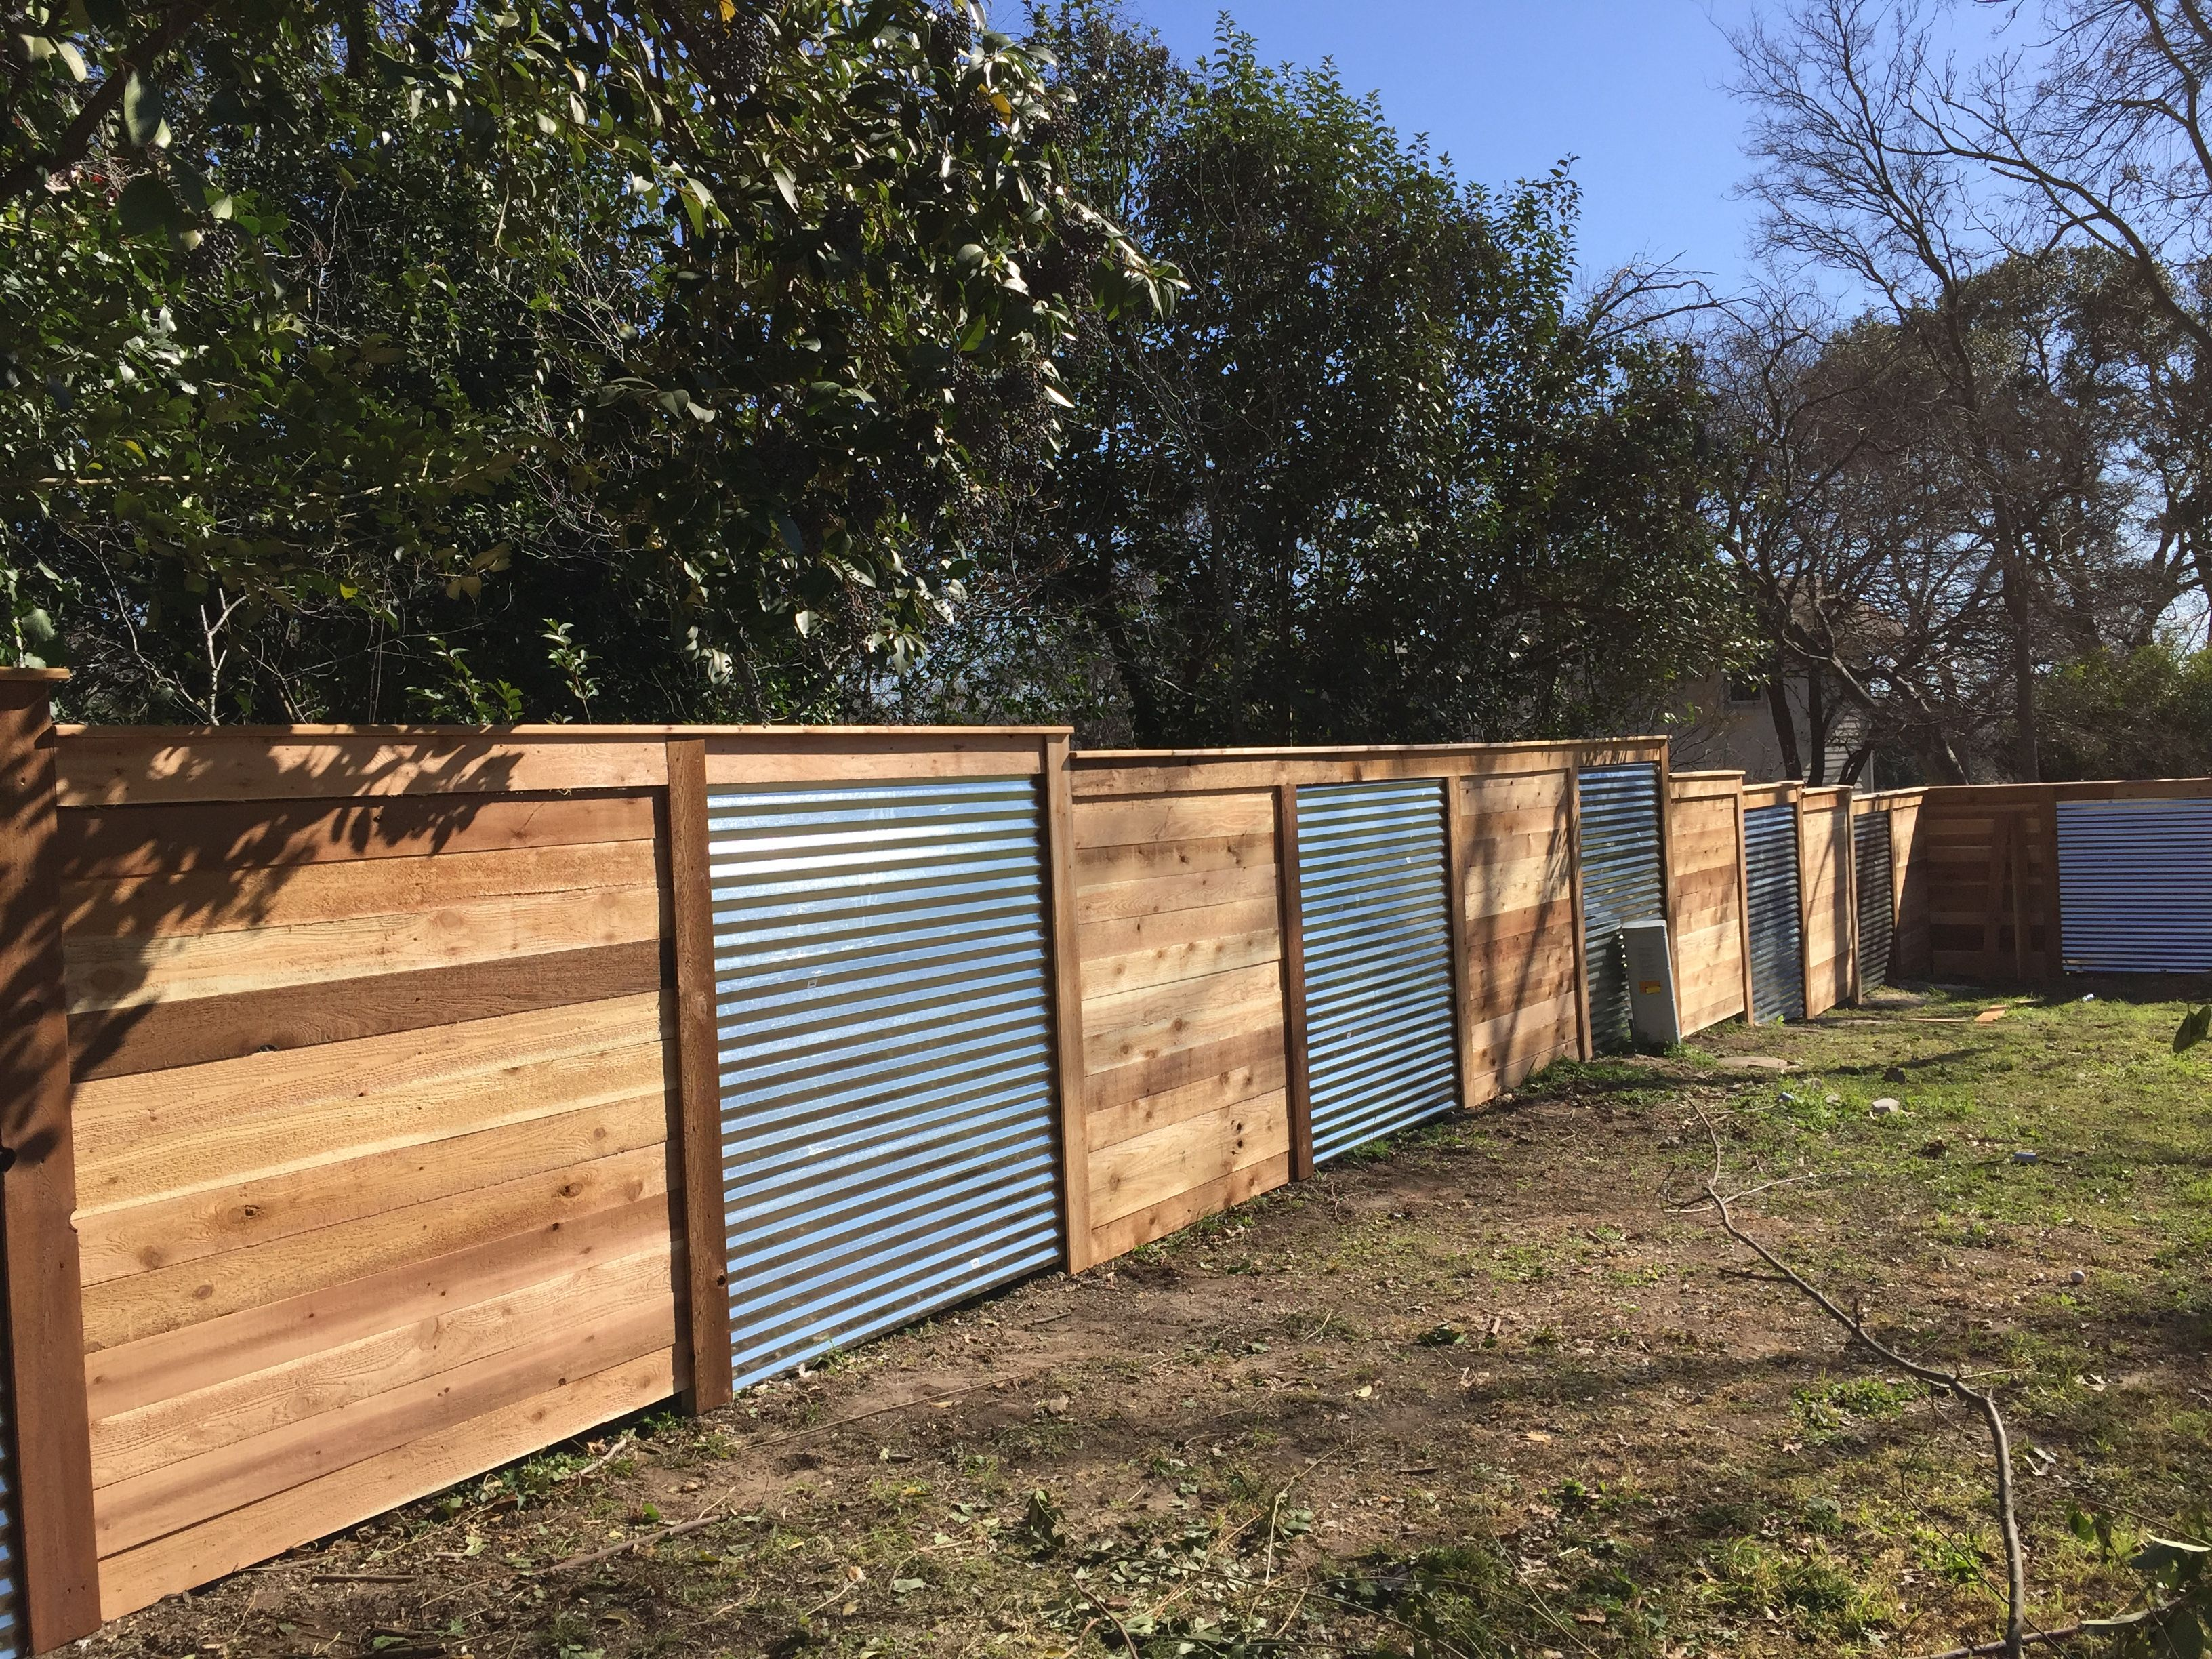 Wood And Metal Privacy Fence. Metal And Wood Privacy Fence Pinterest ...